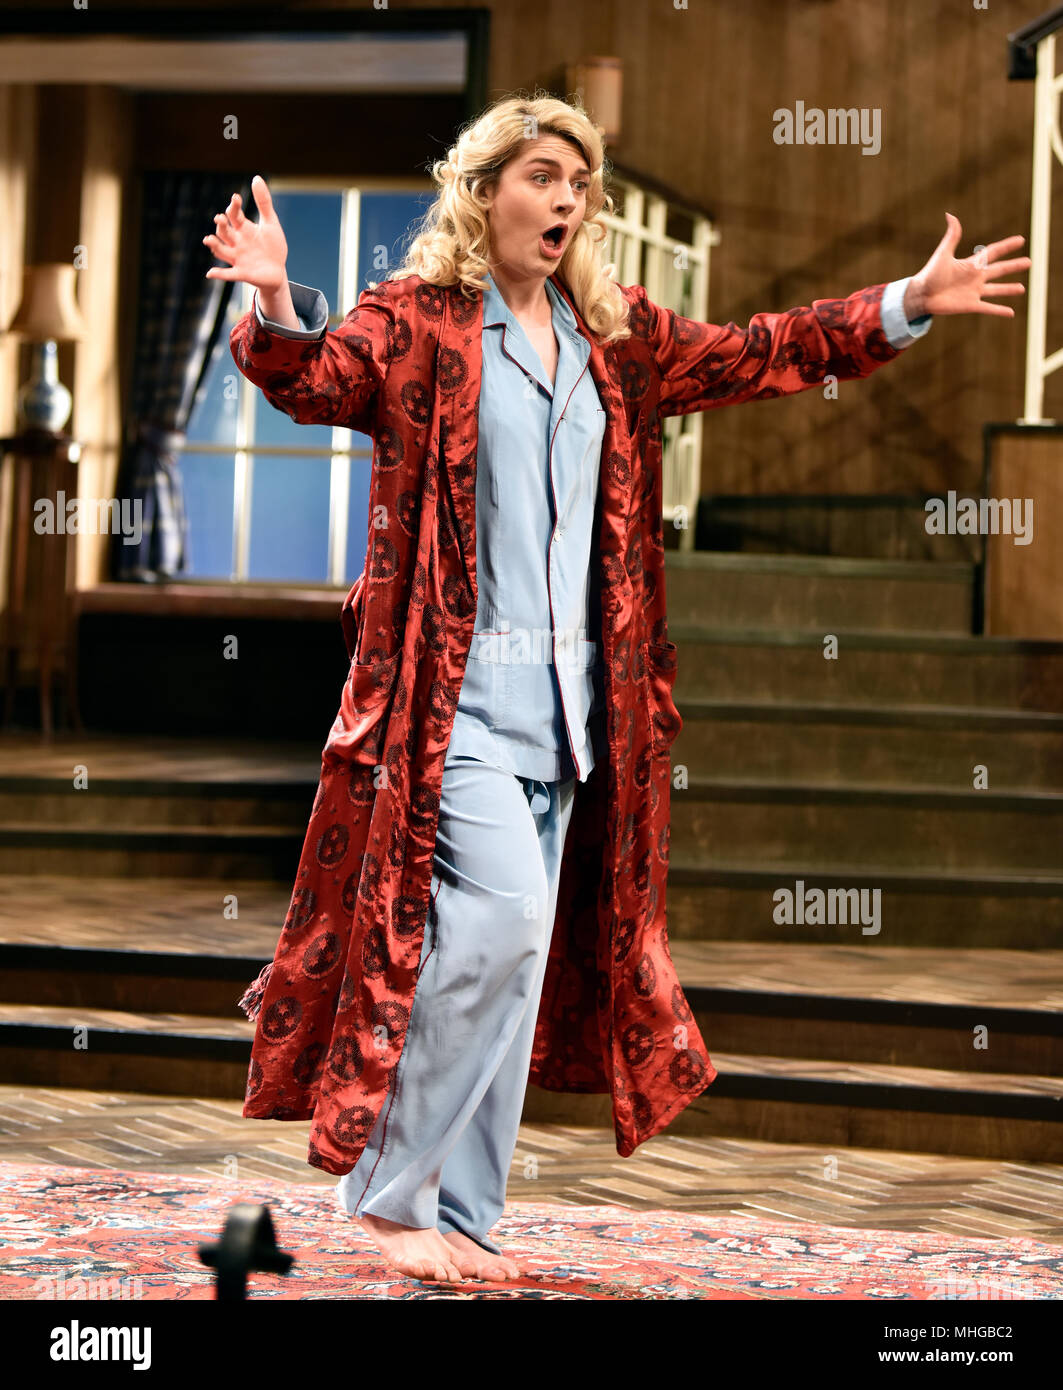 Lizzy Connolly (Playing Daphne Stillington) in a scene from Present Laughter by Noel Coward, Chichester Festival Theatre, Chichester, Sussex, United K - Stock Image